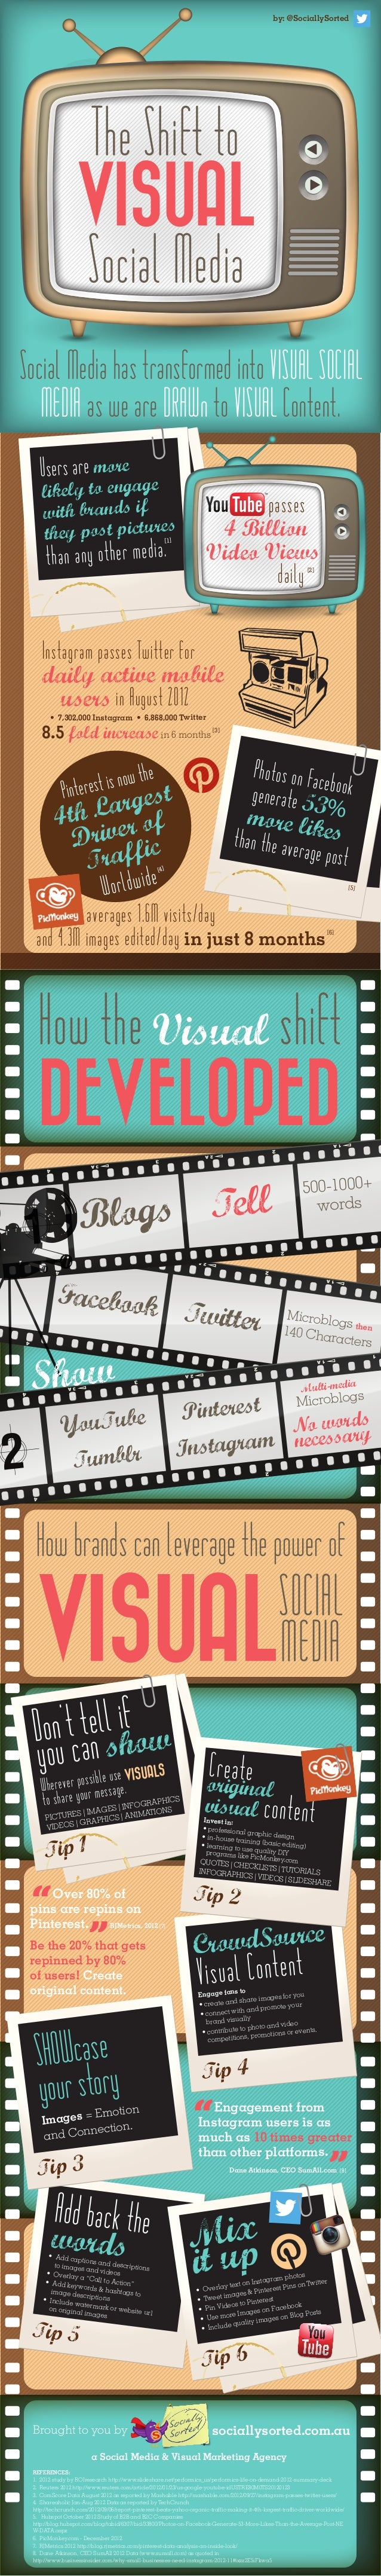 Social Media has transformed into VISUAL SOCIAL  MEDIA as we are DRAWn to VISUAL Content. Brought to you by ...